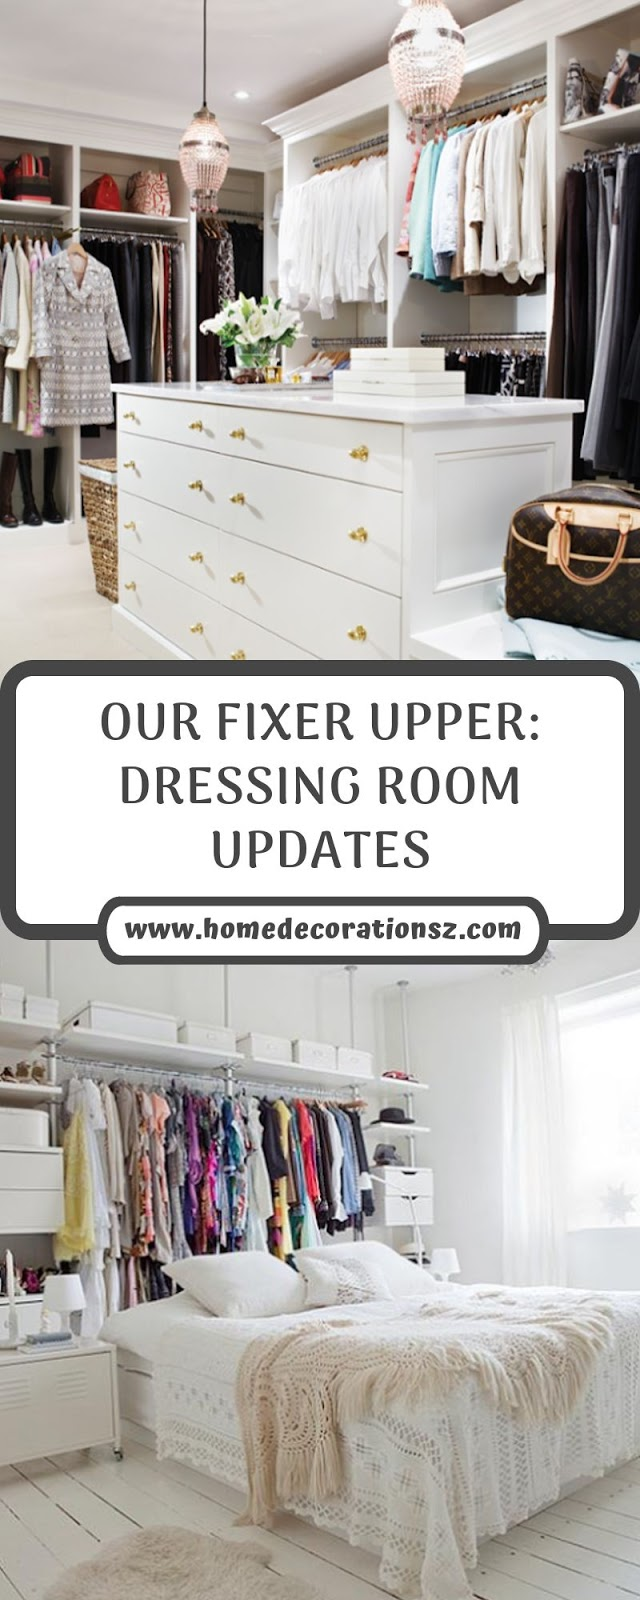 OUR FIXER UPPER: DRESSING ROOM UPDATES